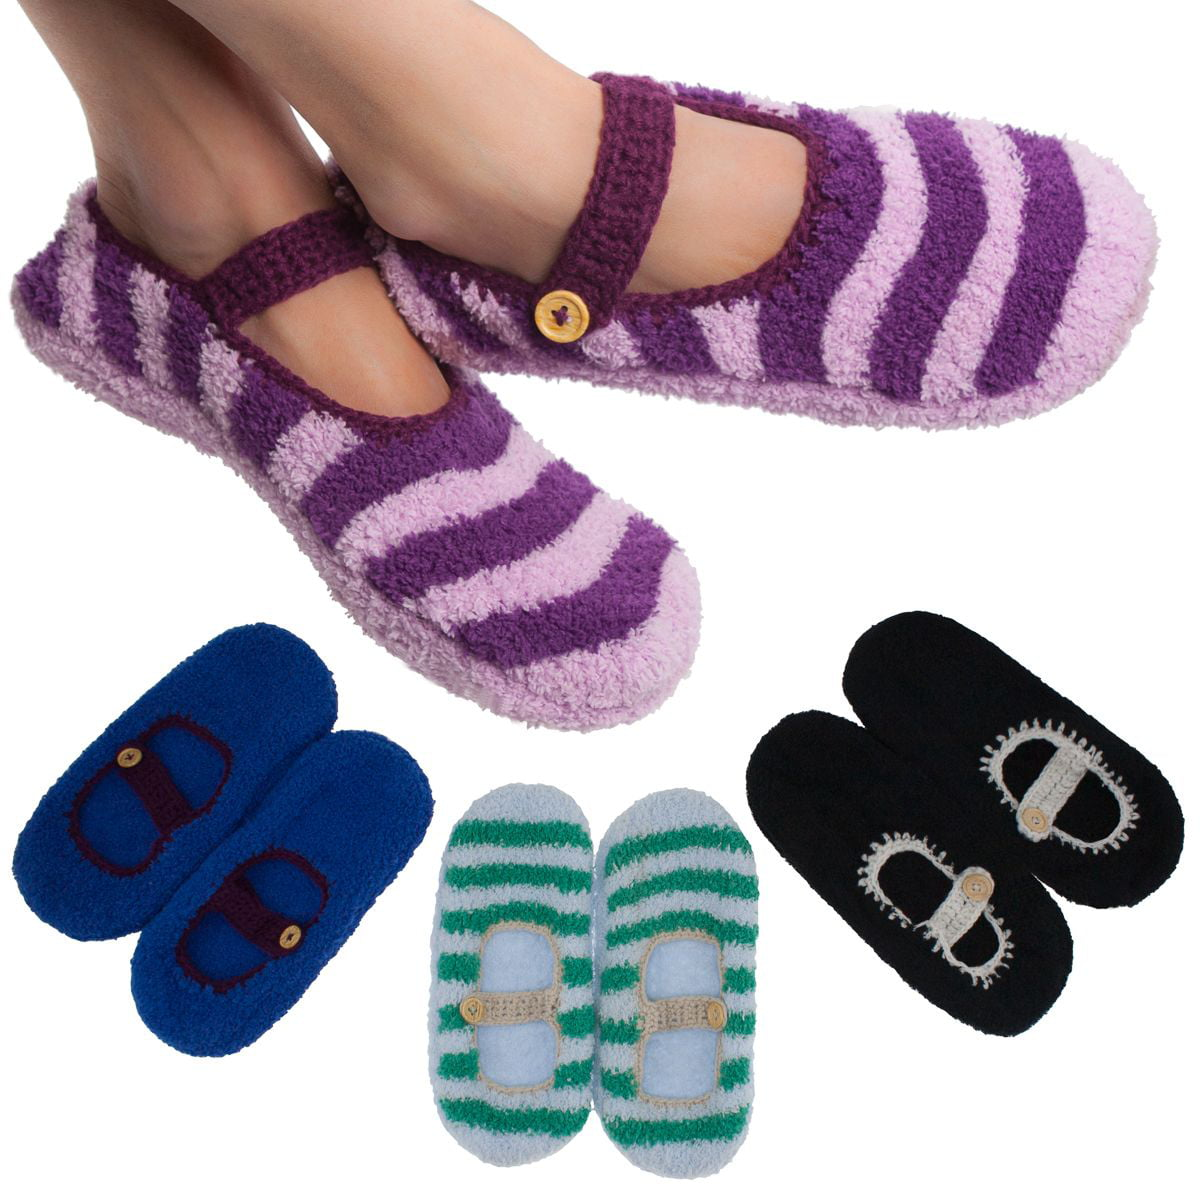 4 Pairs Women S Mary Jane Slipper Socks Fuzzy Non Skid Assorted